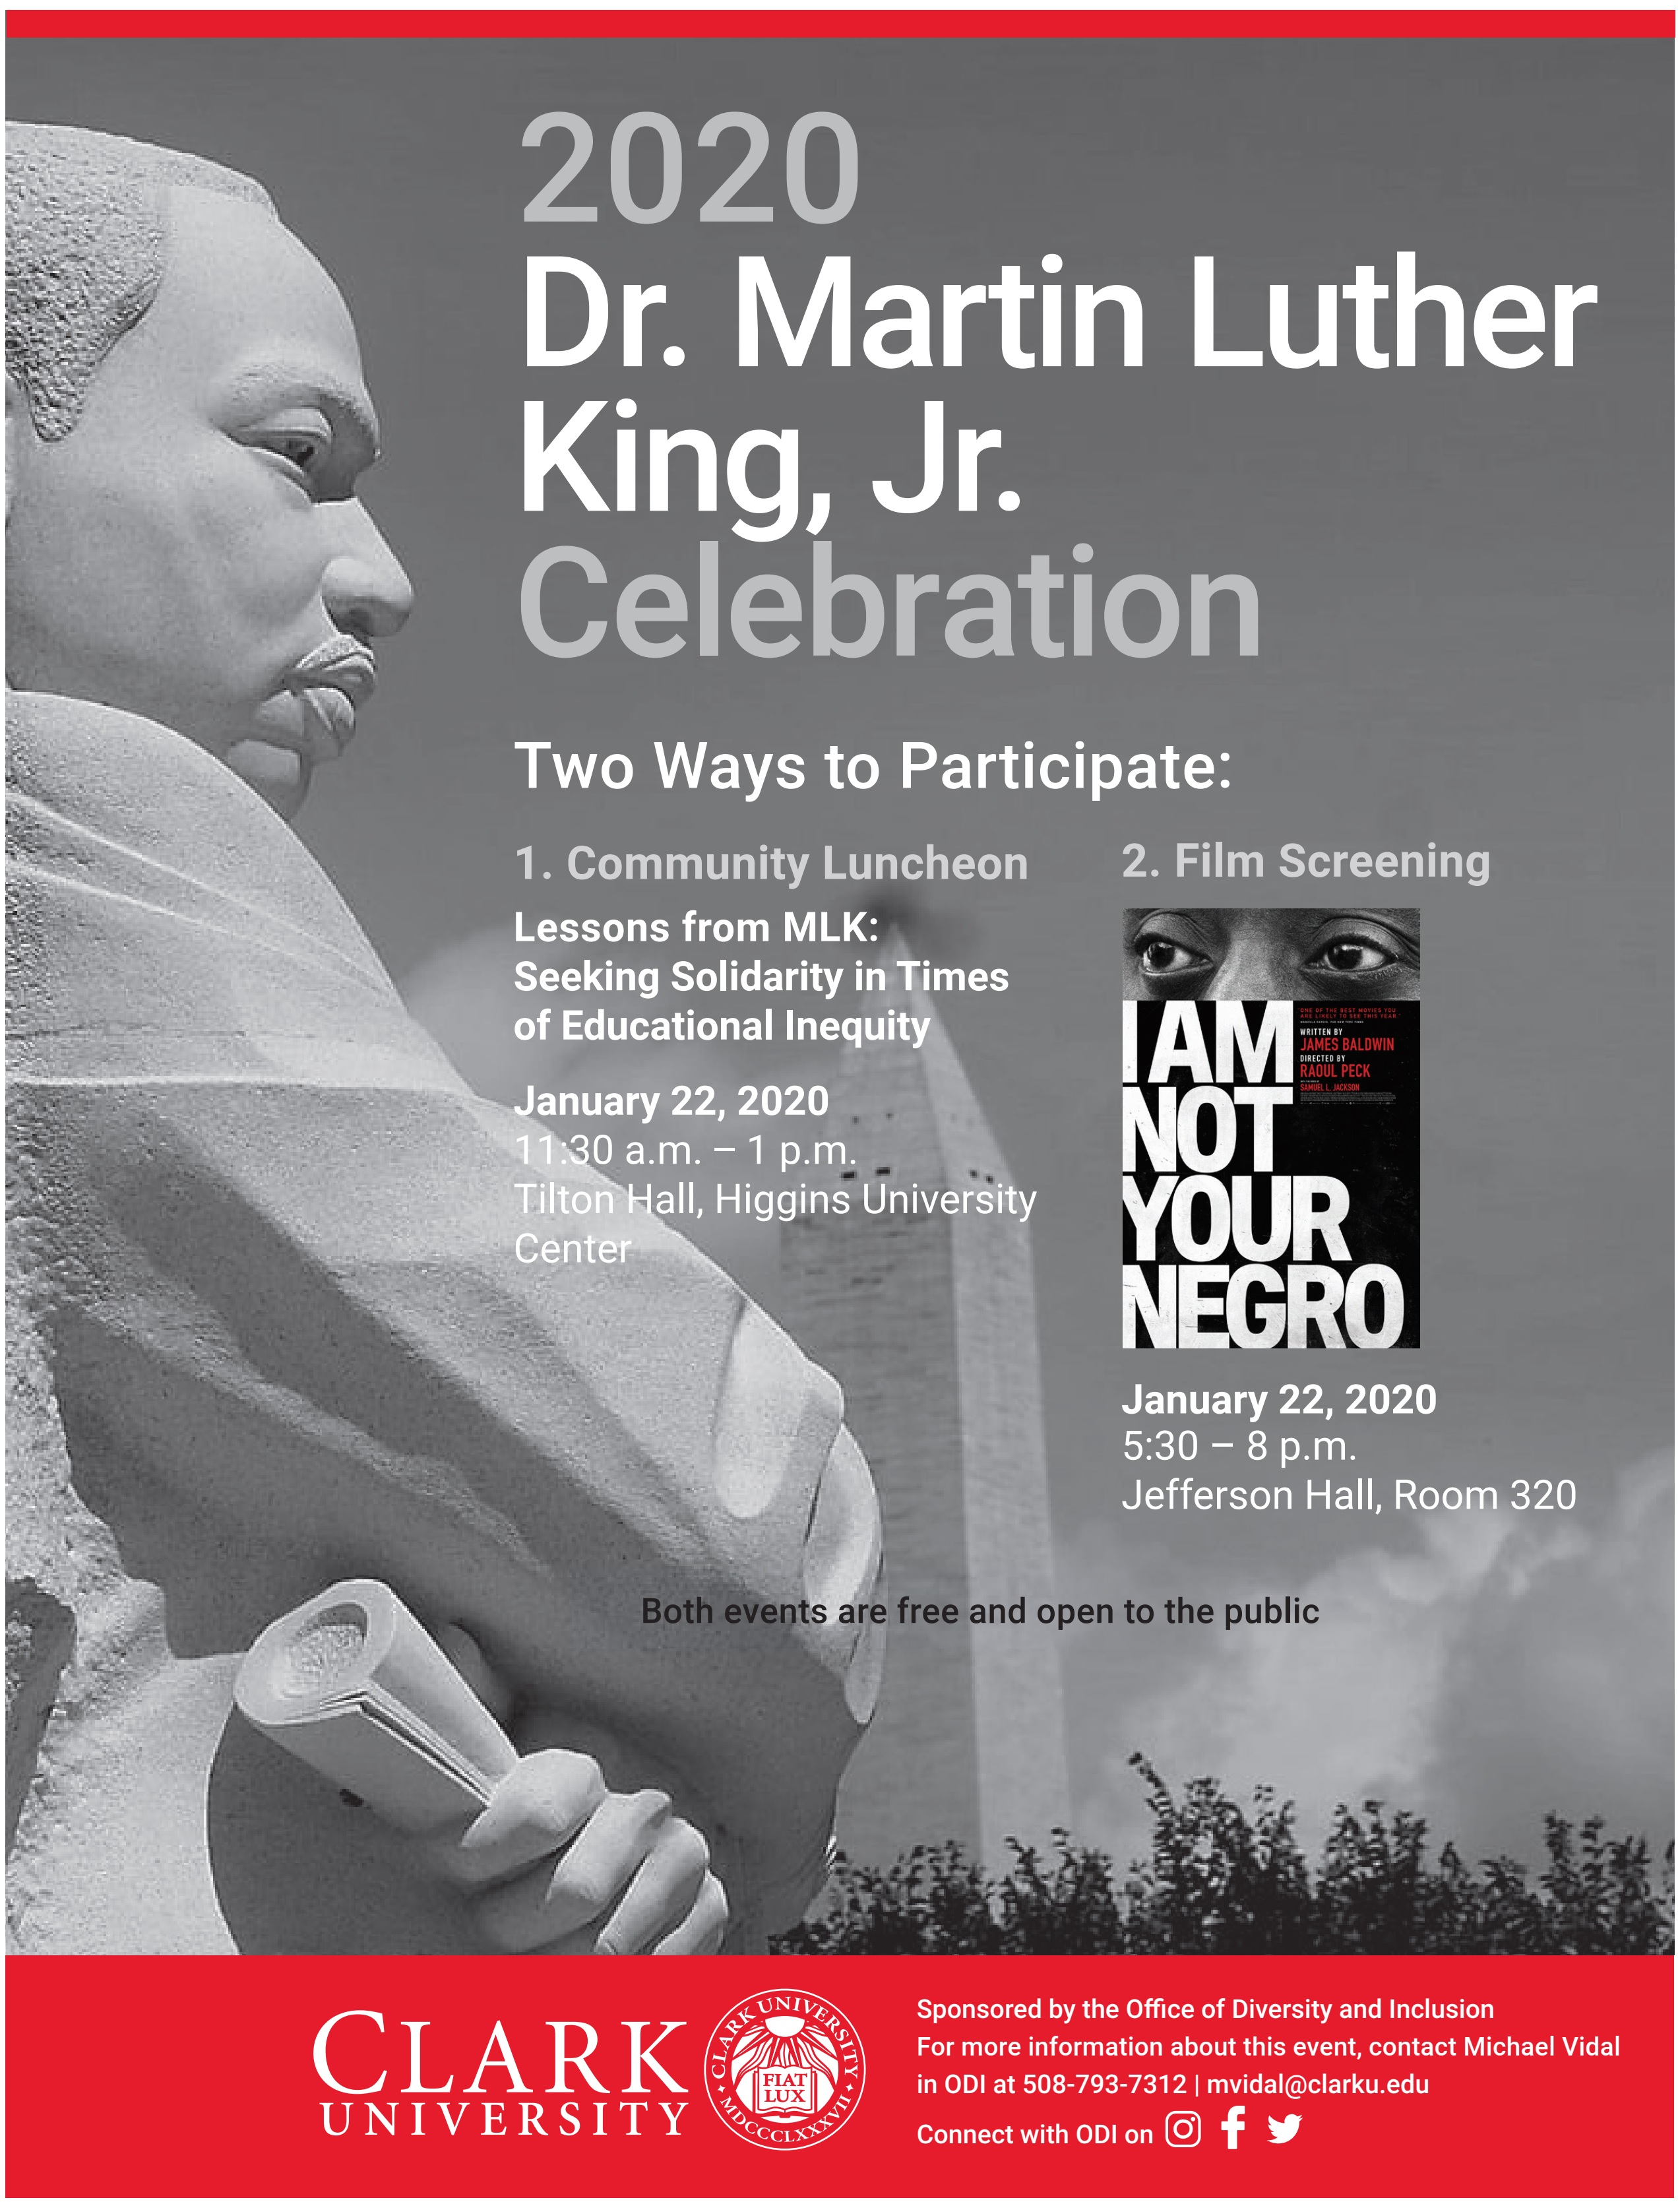 martin luther king jr day - photo #35